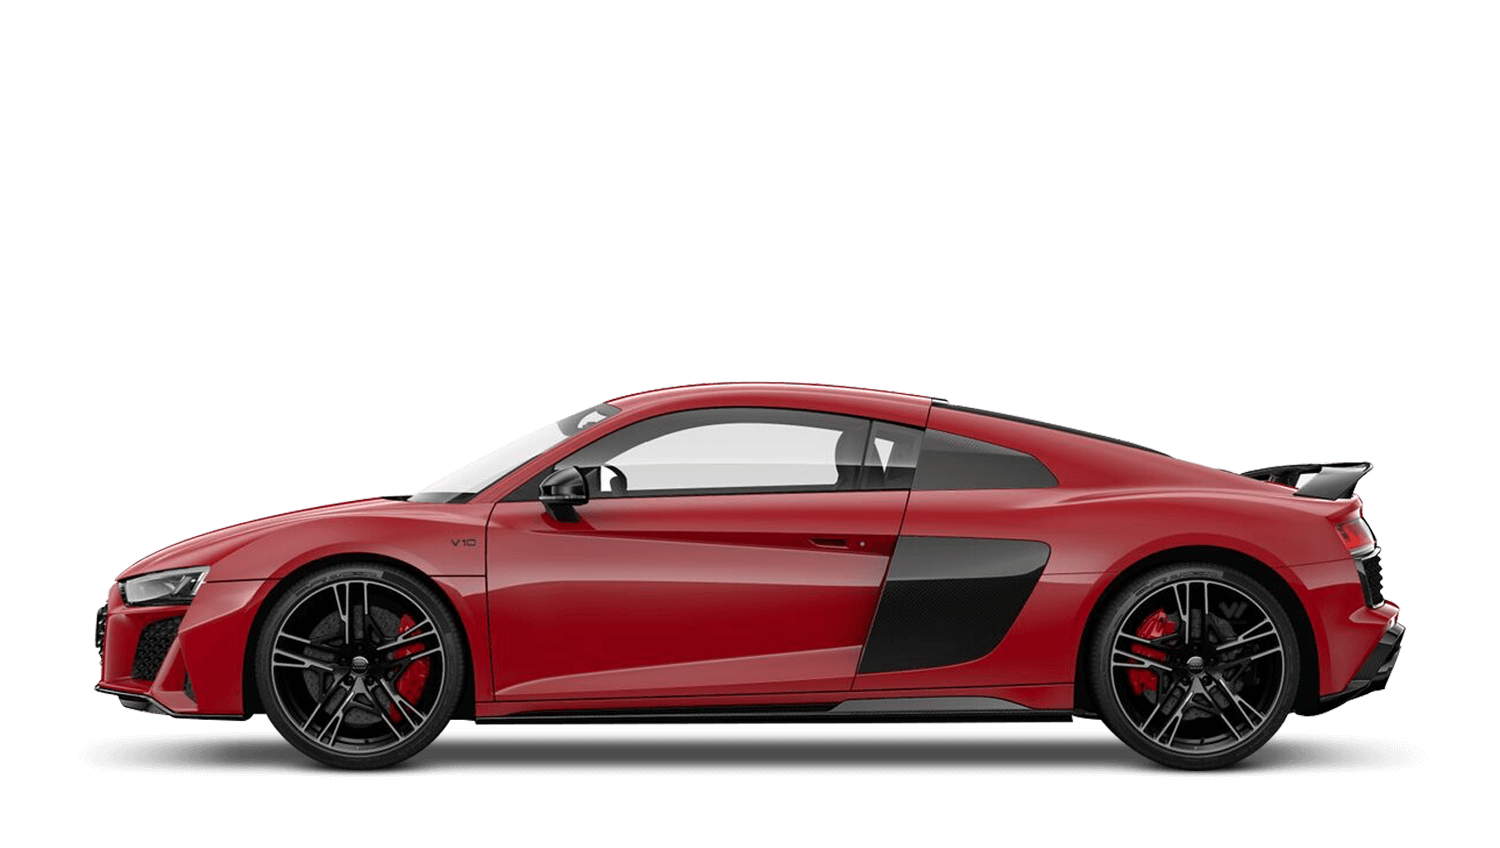 Tango Red (Metallic) Audi R8 Coupé